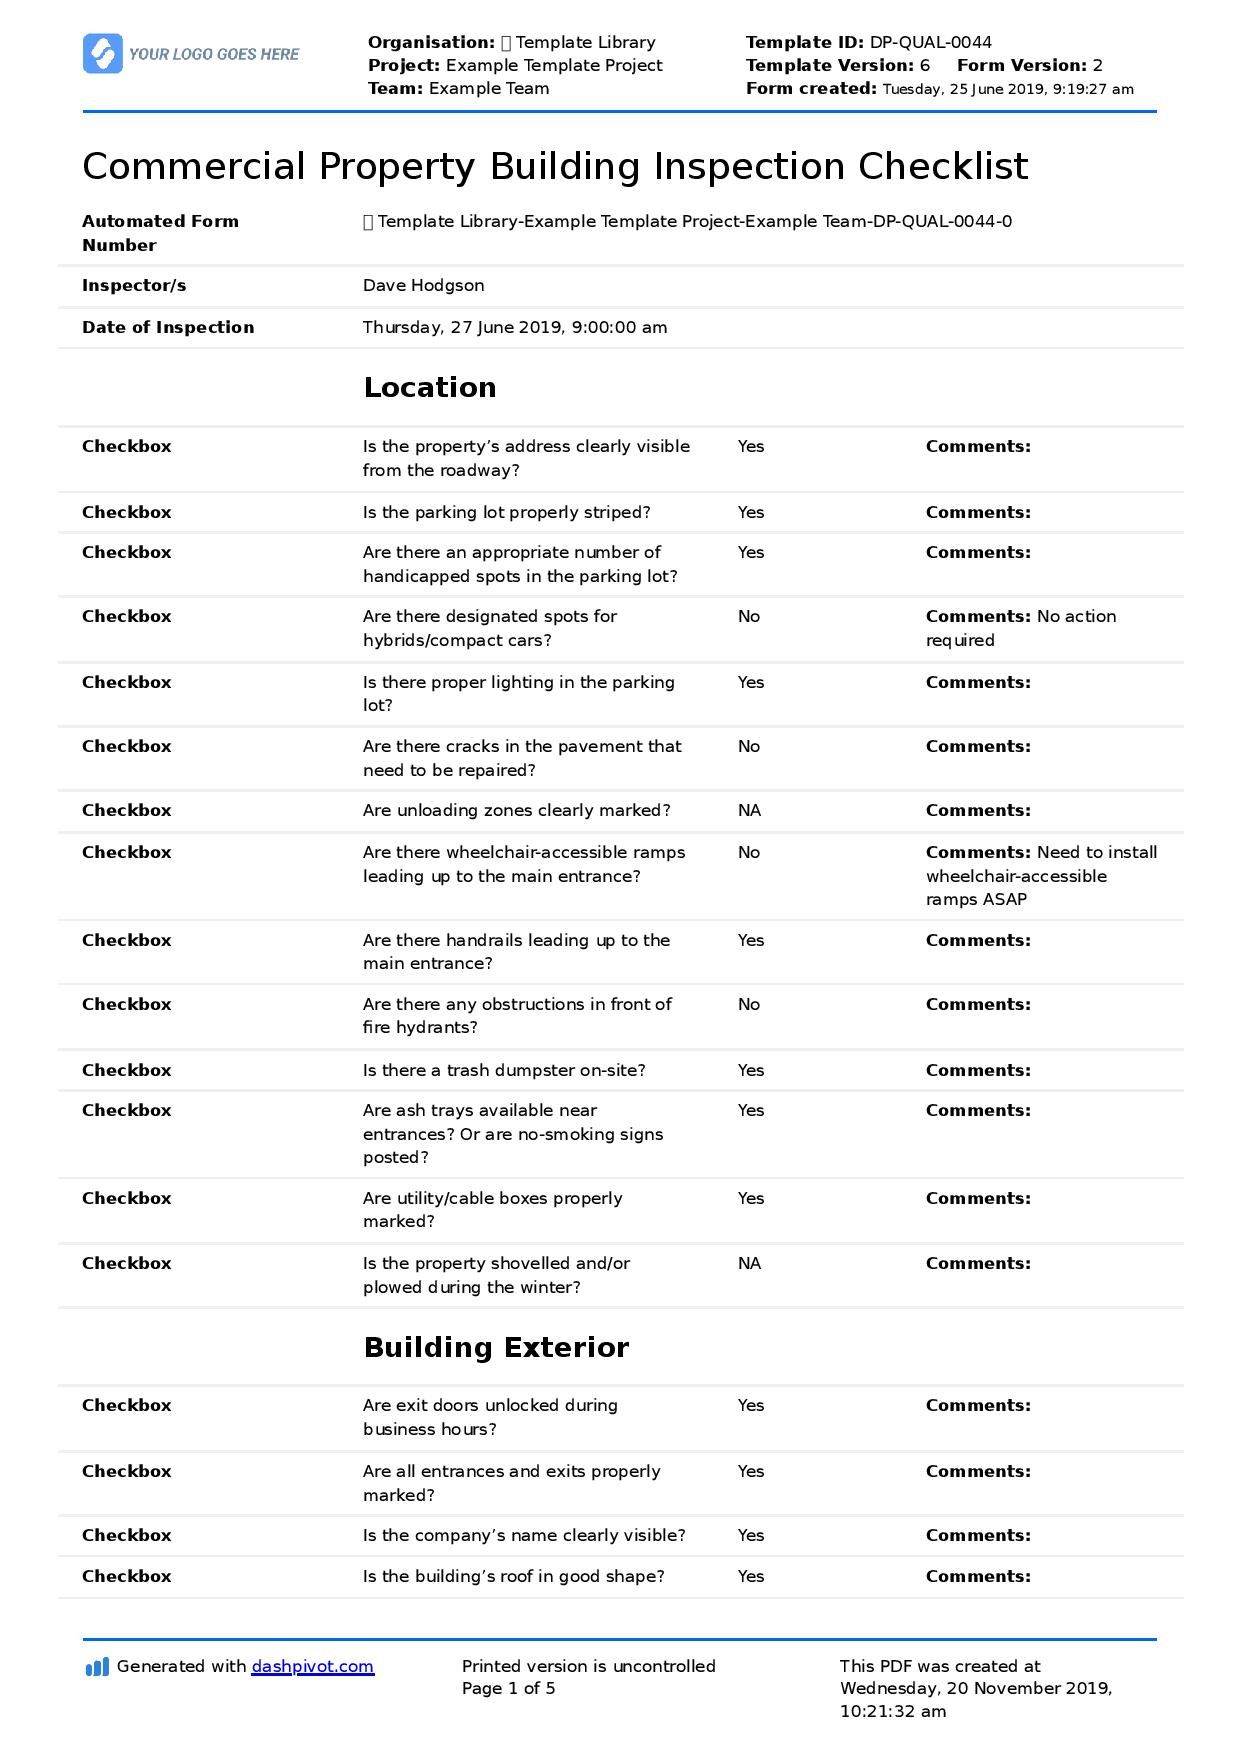 Commercial Building Inspection Checklist Quicker Easier In Commercial Property Inspection Report Inspection Checklist Checklist Template Commercial Property